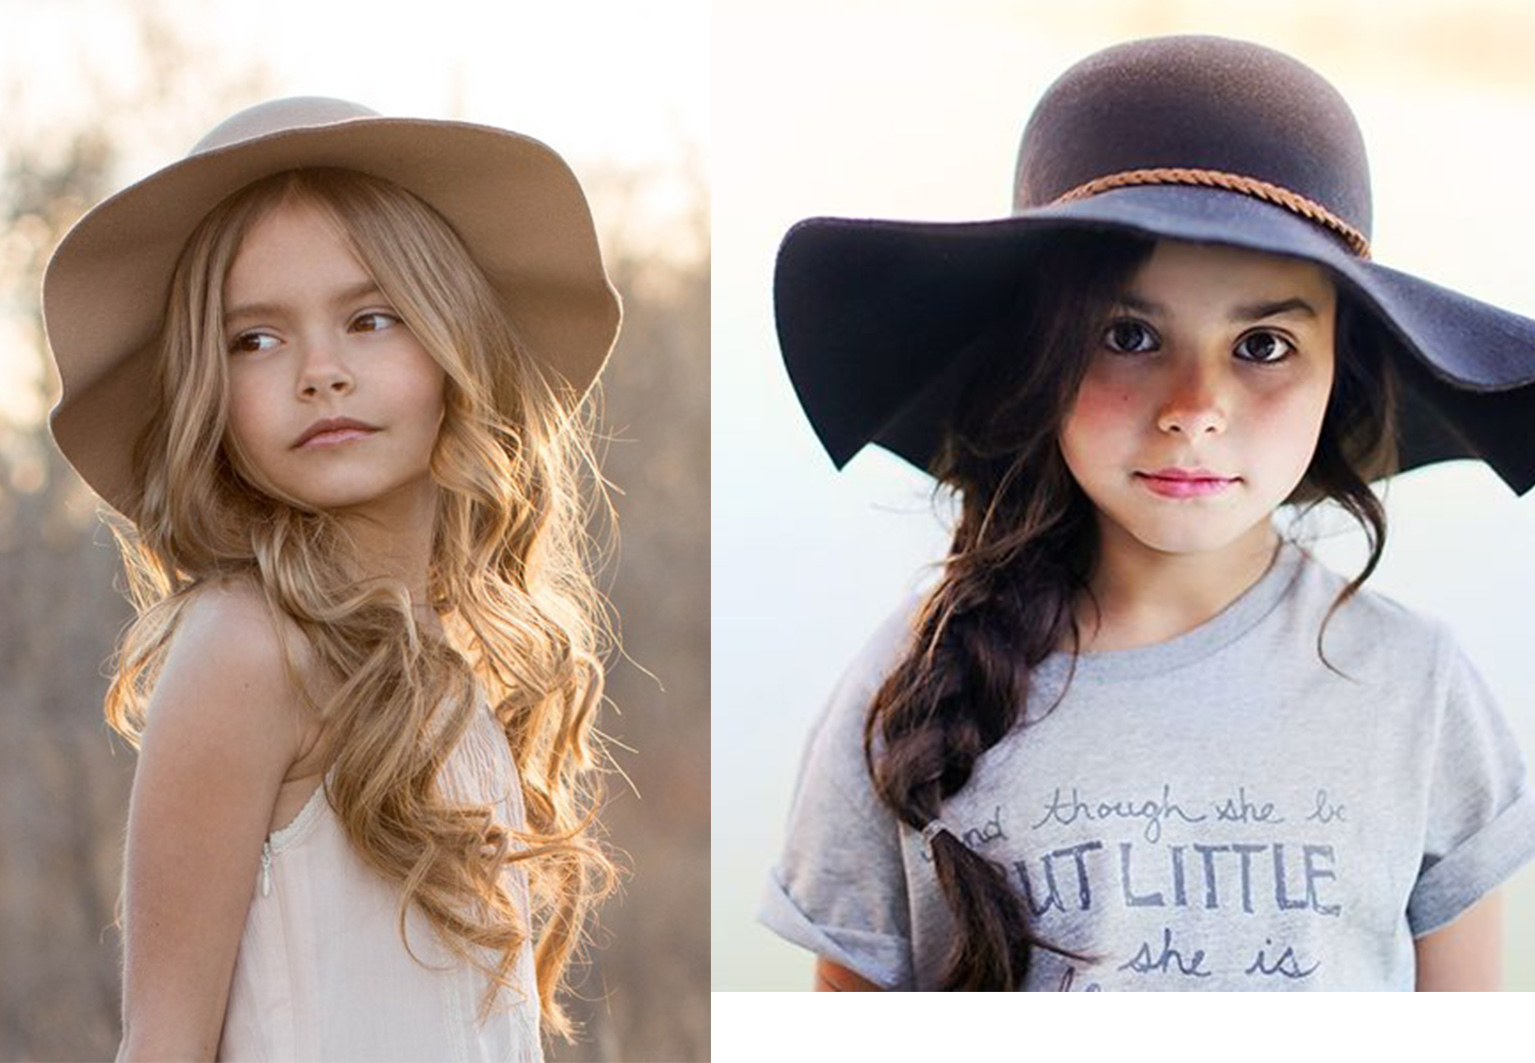 http://www.joyfolie.com/jeune-fille/accessories/hats-and-scarves/new-soujourner-hat-in-tan